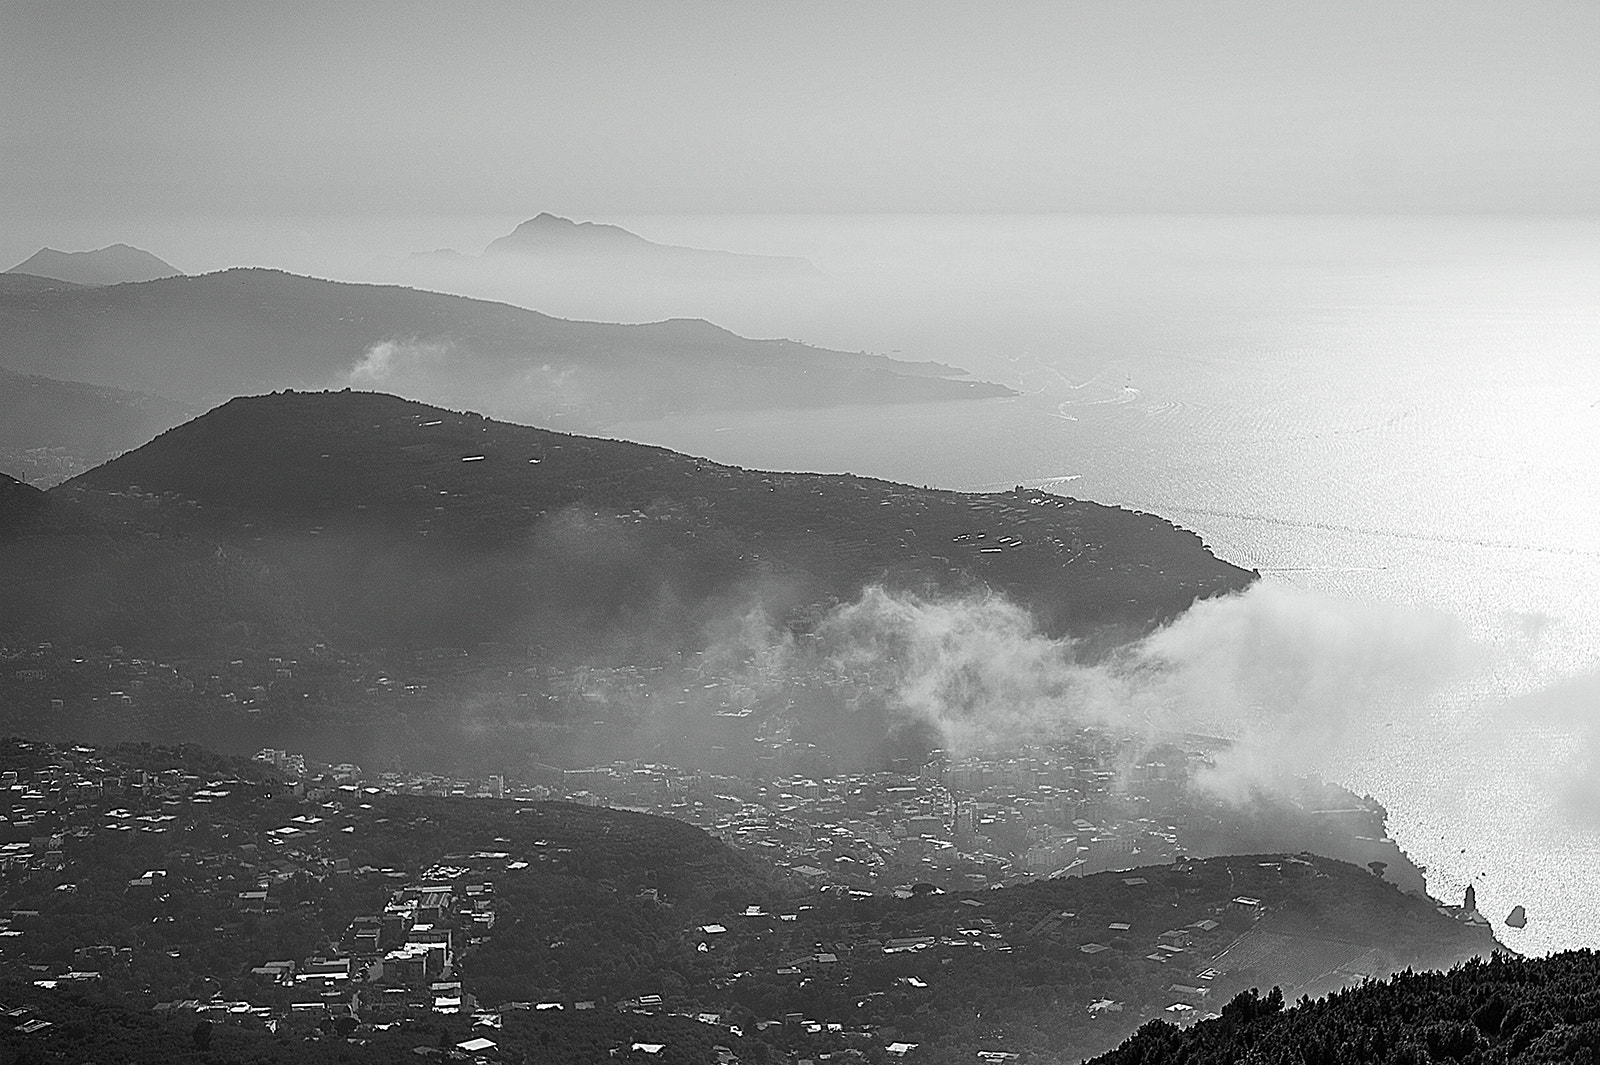 Photograph sorrento by P M on 500px